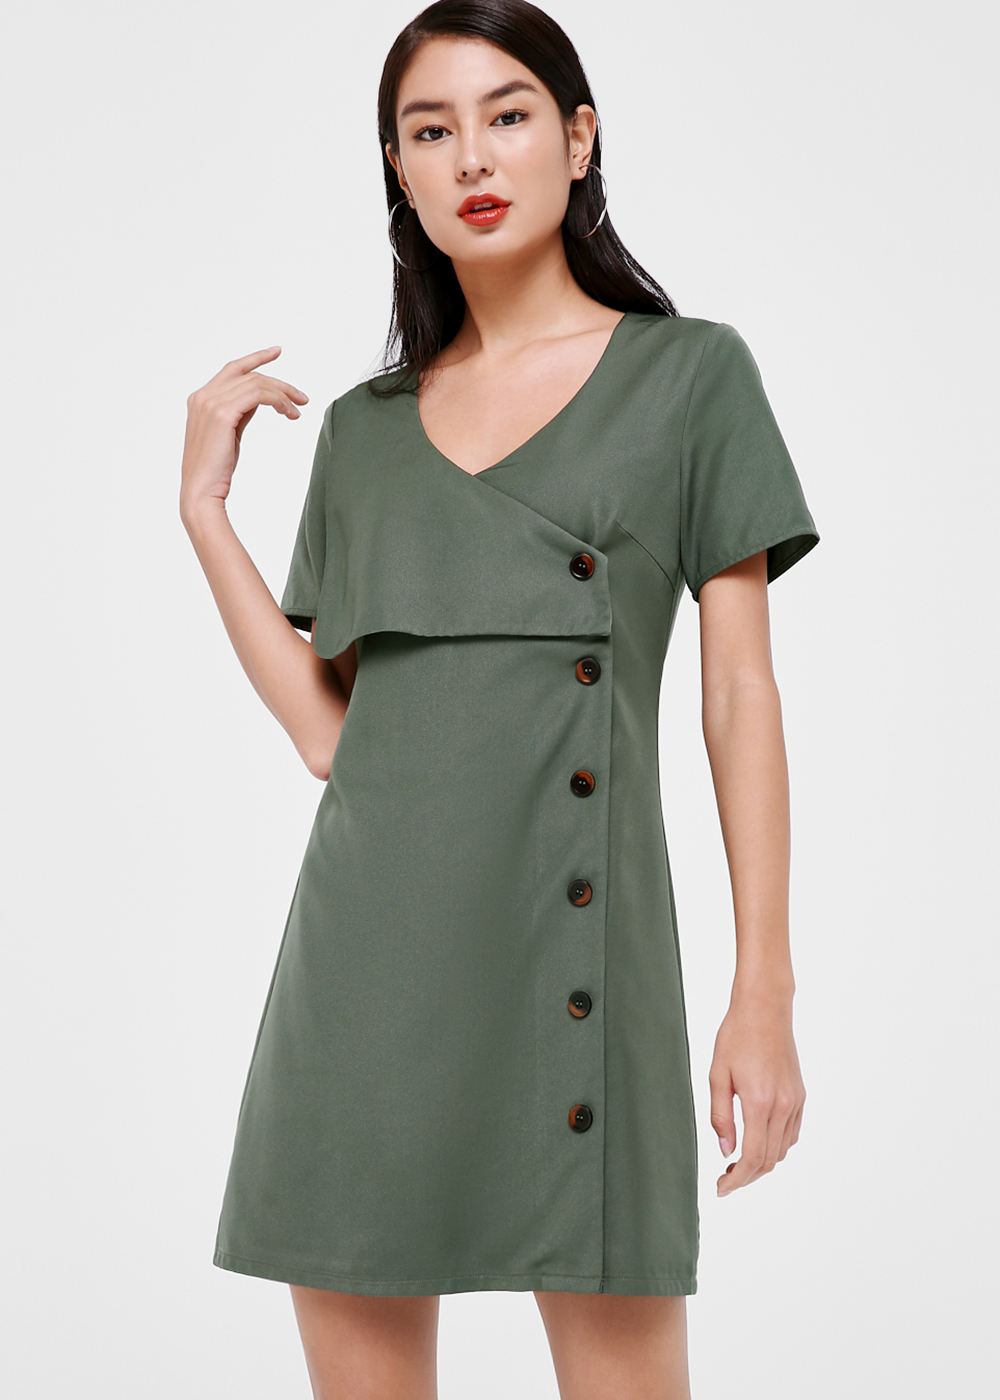 Doris Foldover Button Down Dress